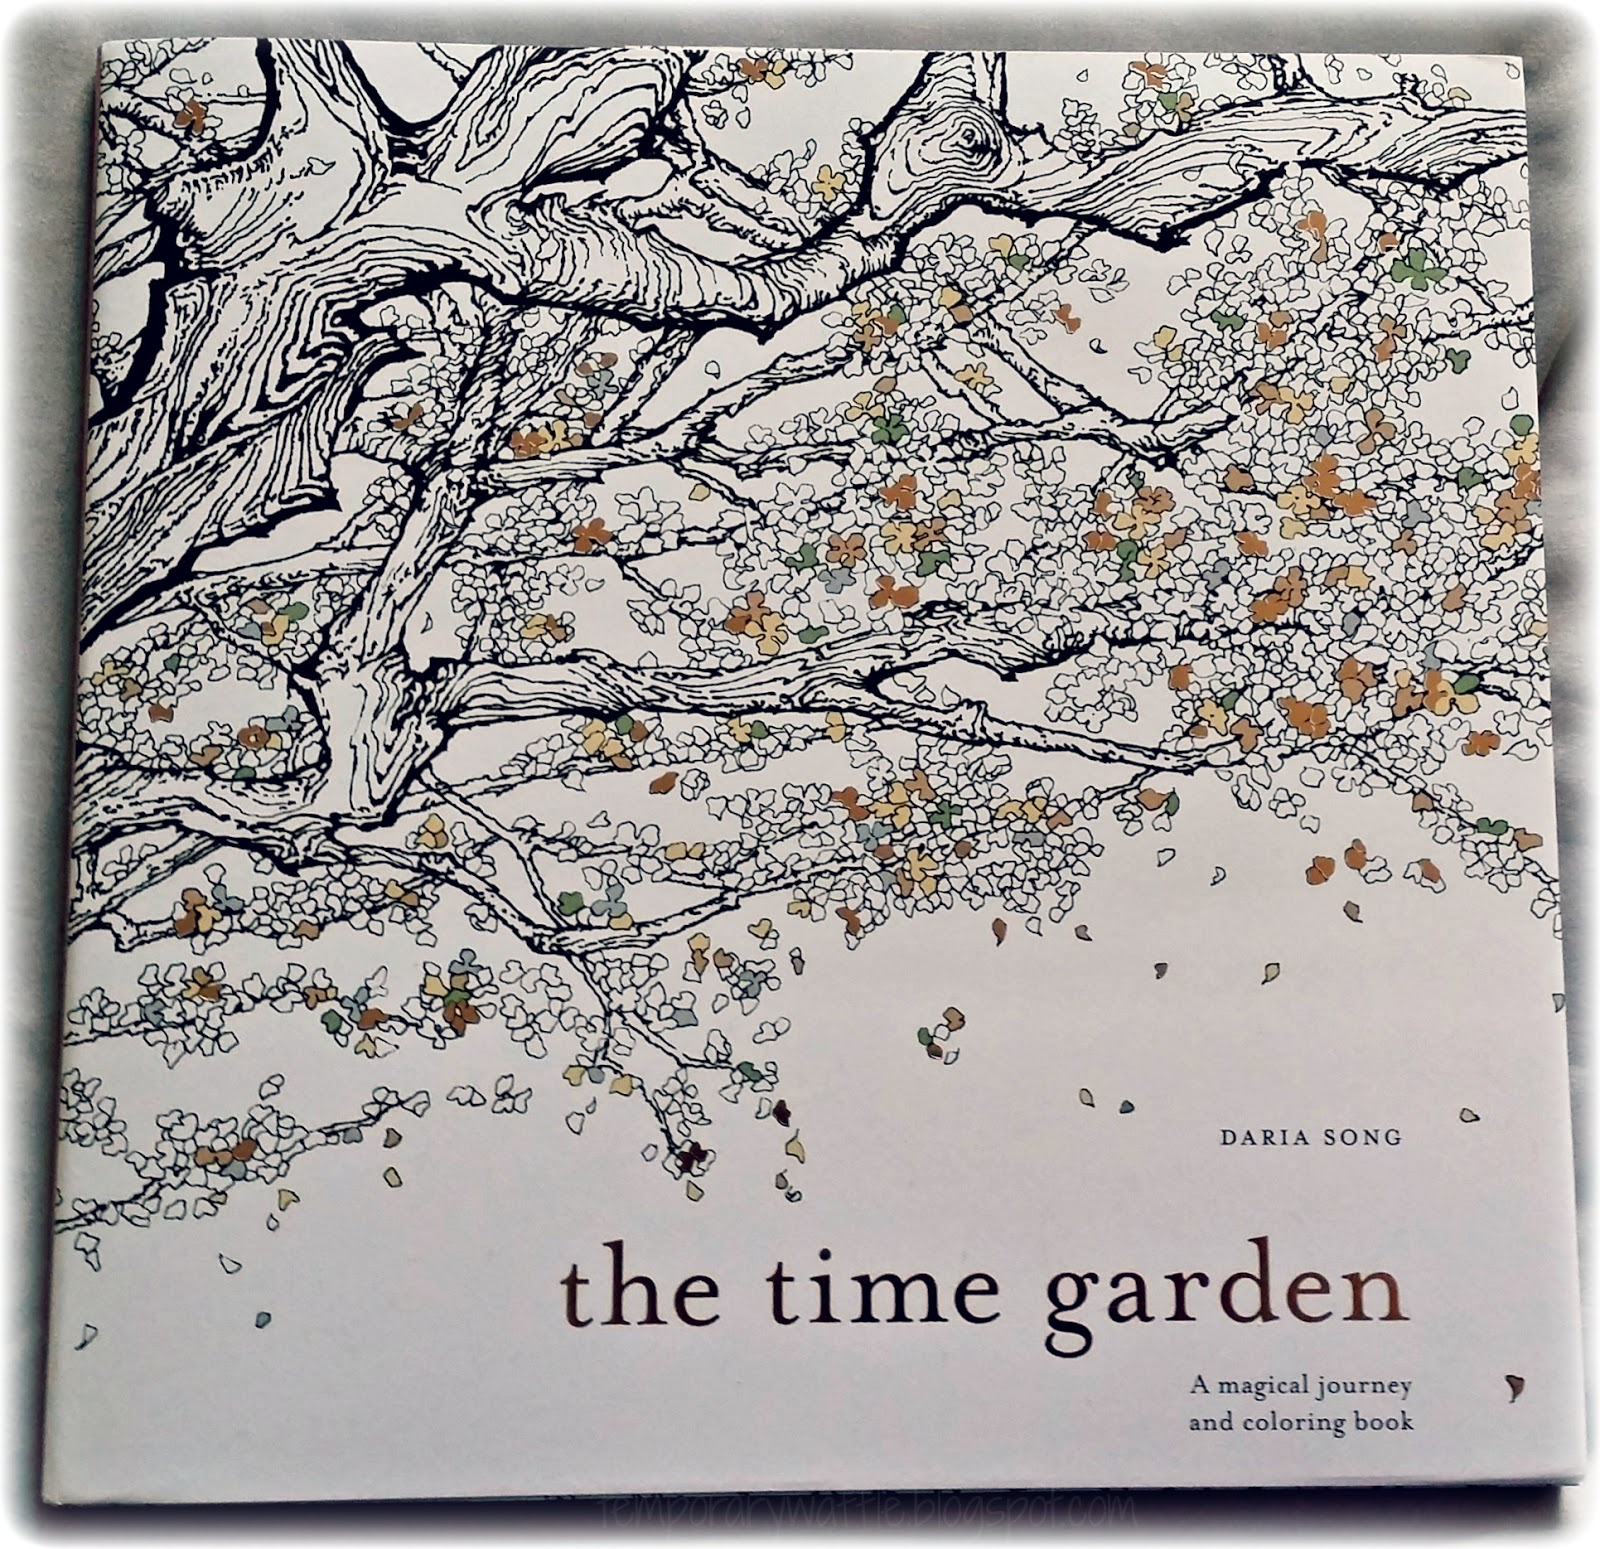 Explore The Magic Of Time Garden By Daria Song A Magical Journey And Coloring Book In One You Can Get Lost Inside Cuckoo Clock Inspired